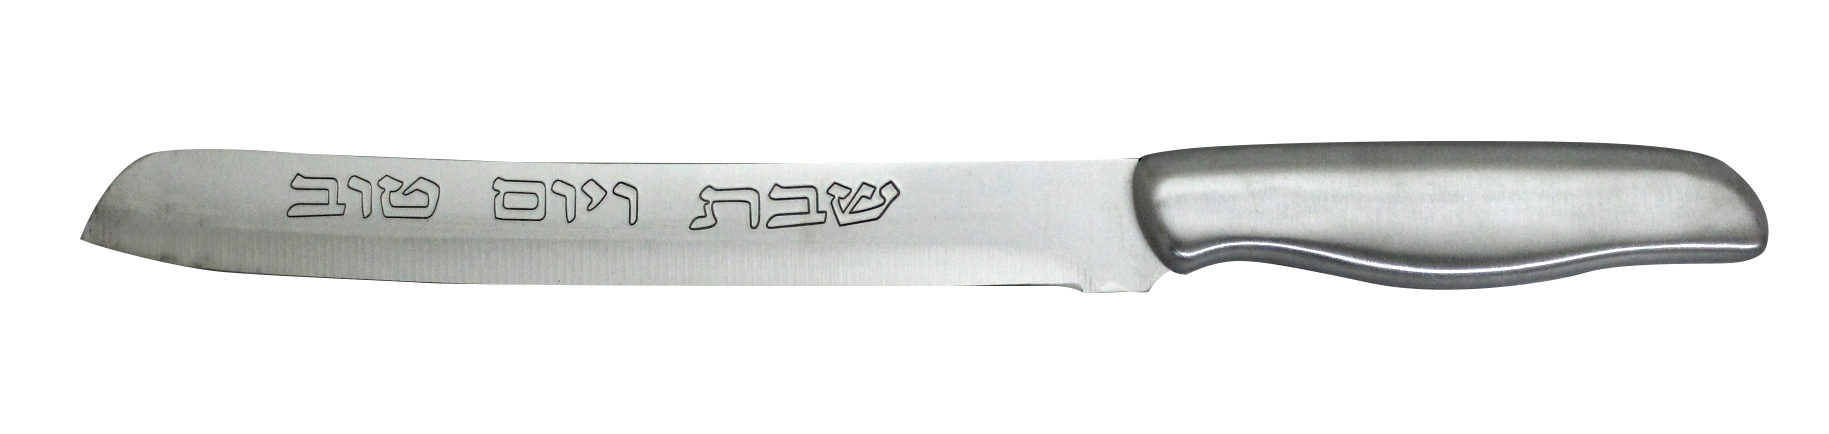 "Stainless Steel Knife With ""for Shabbat And Holidays"" Inscription"